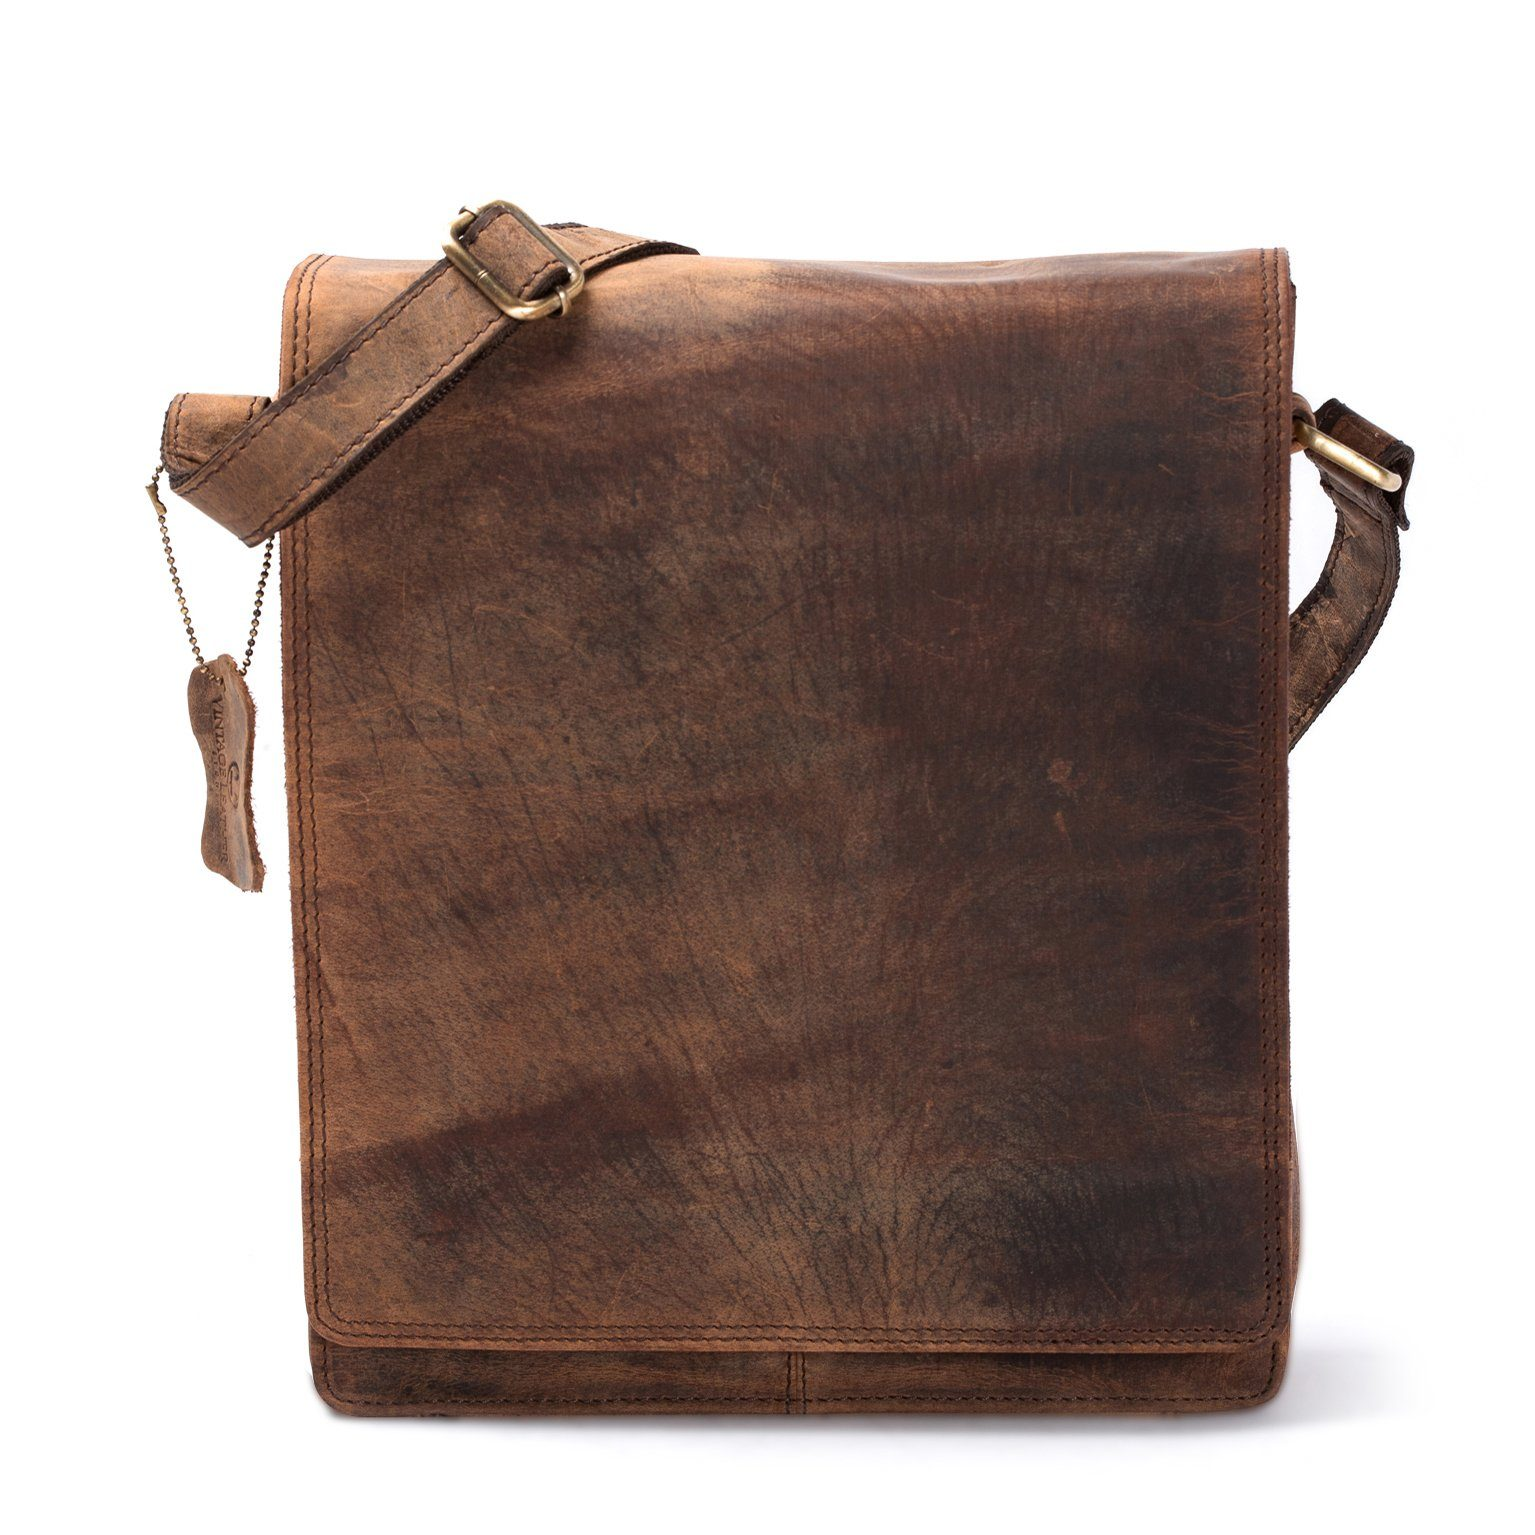 satchel bag_Vintage Leather Sydney